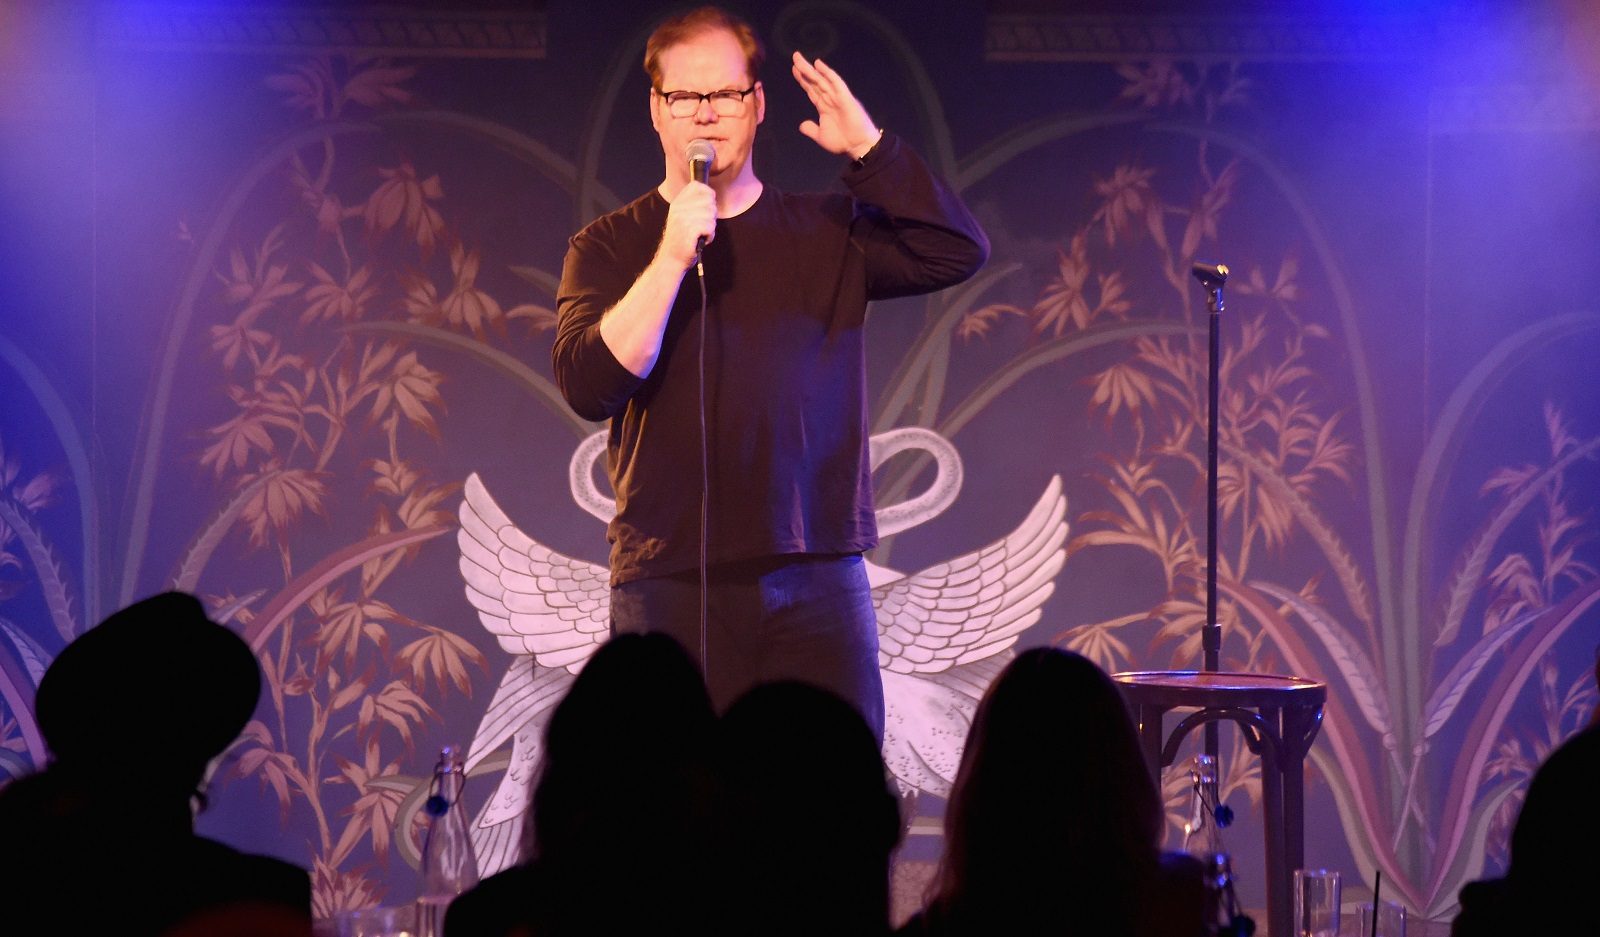 Comedian Jim Gaffigan is performing in Niagara Falls, Ont. (Getty Images)